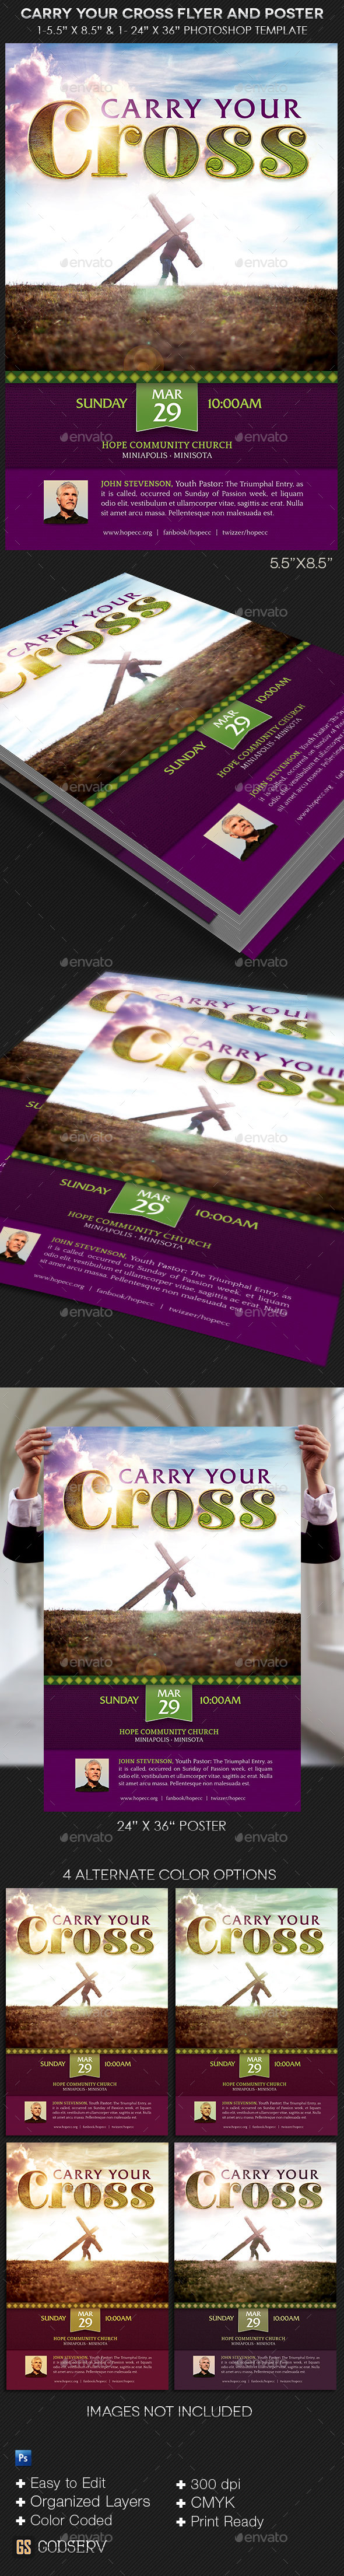 GraphicRiver Carry Your Cross Flyer and Poster Template 10876950